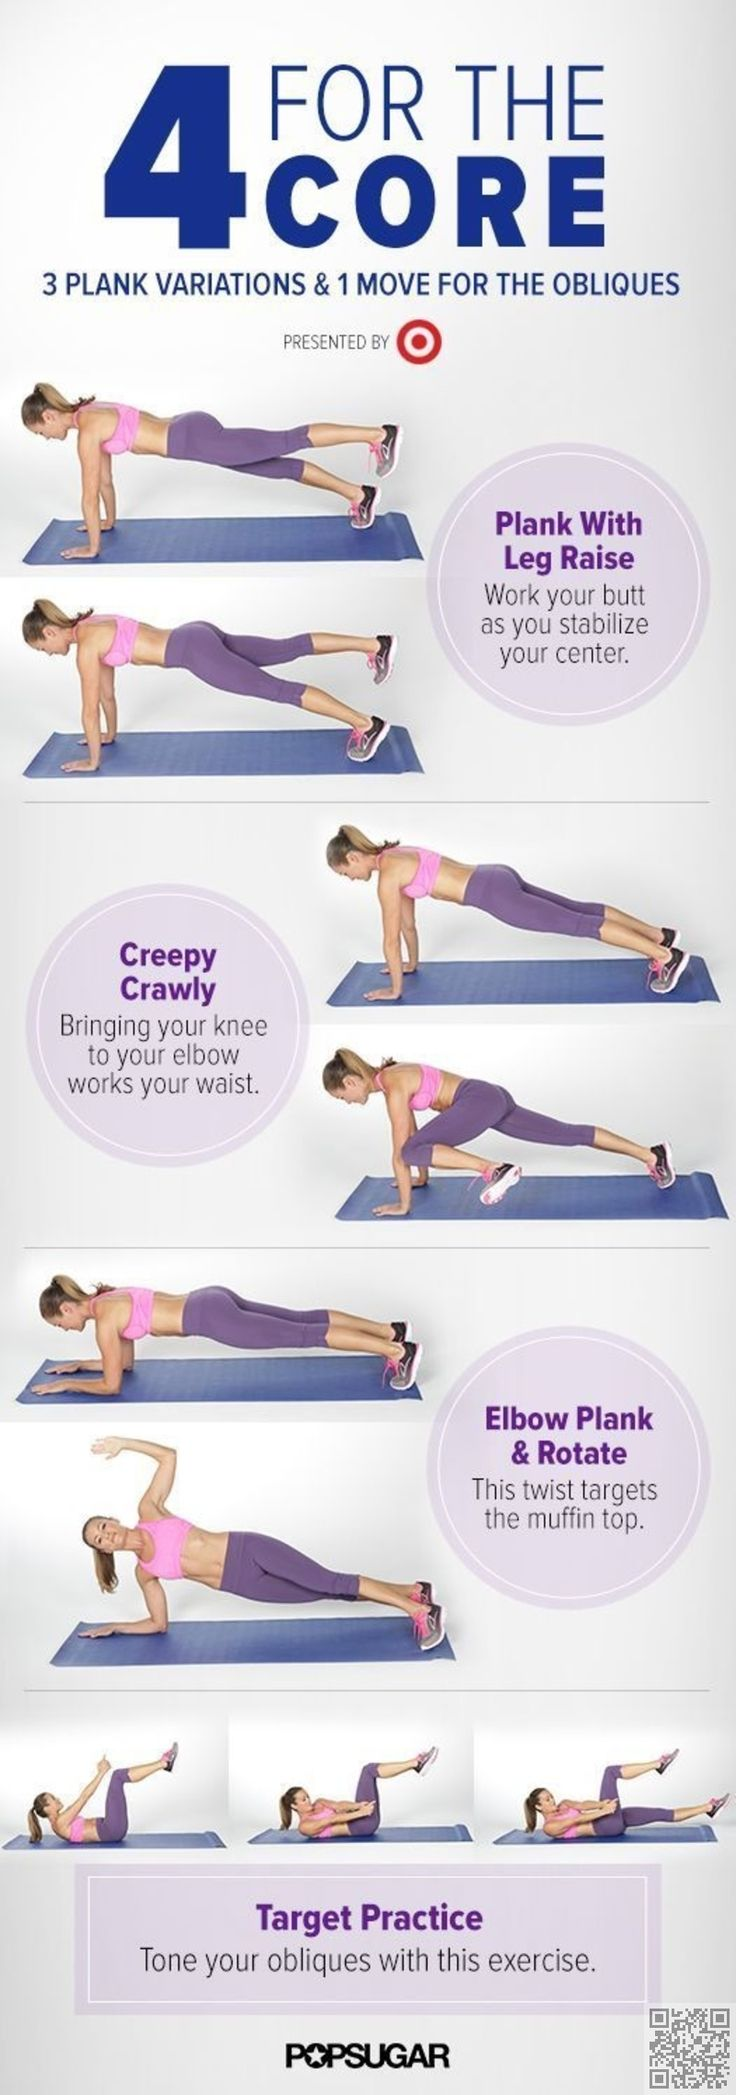 15. #5-Minute Muffin-Top #Workout - Flabby to Fit in 5, with #These Magical…